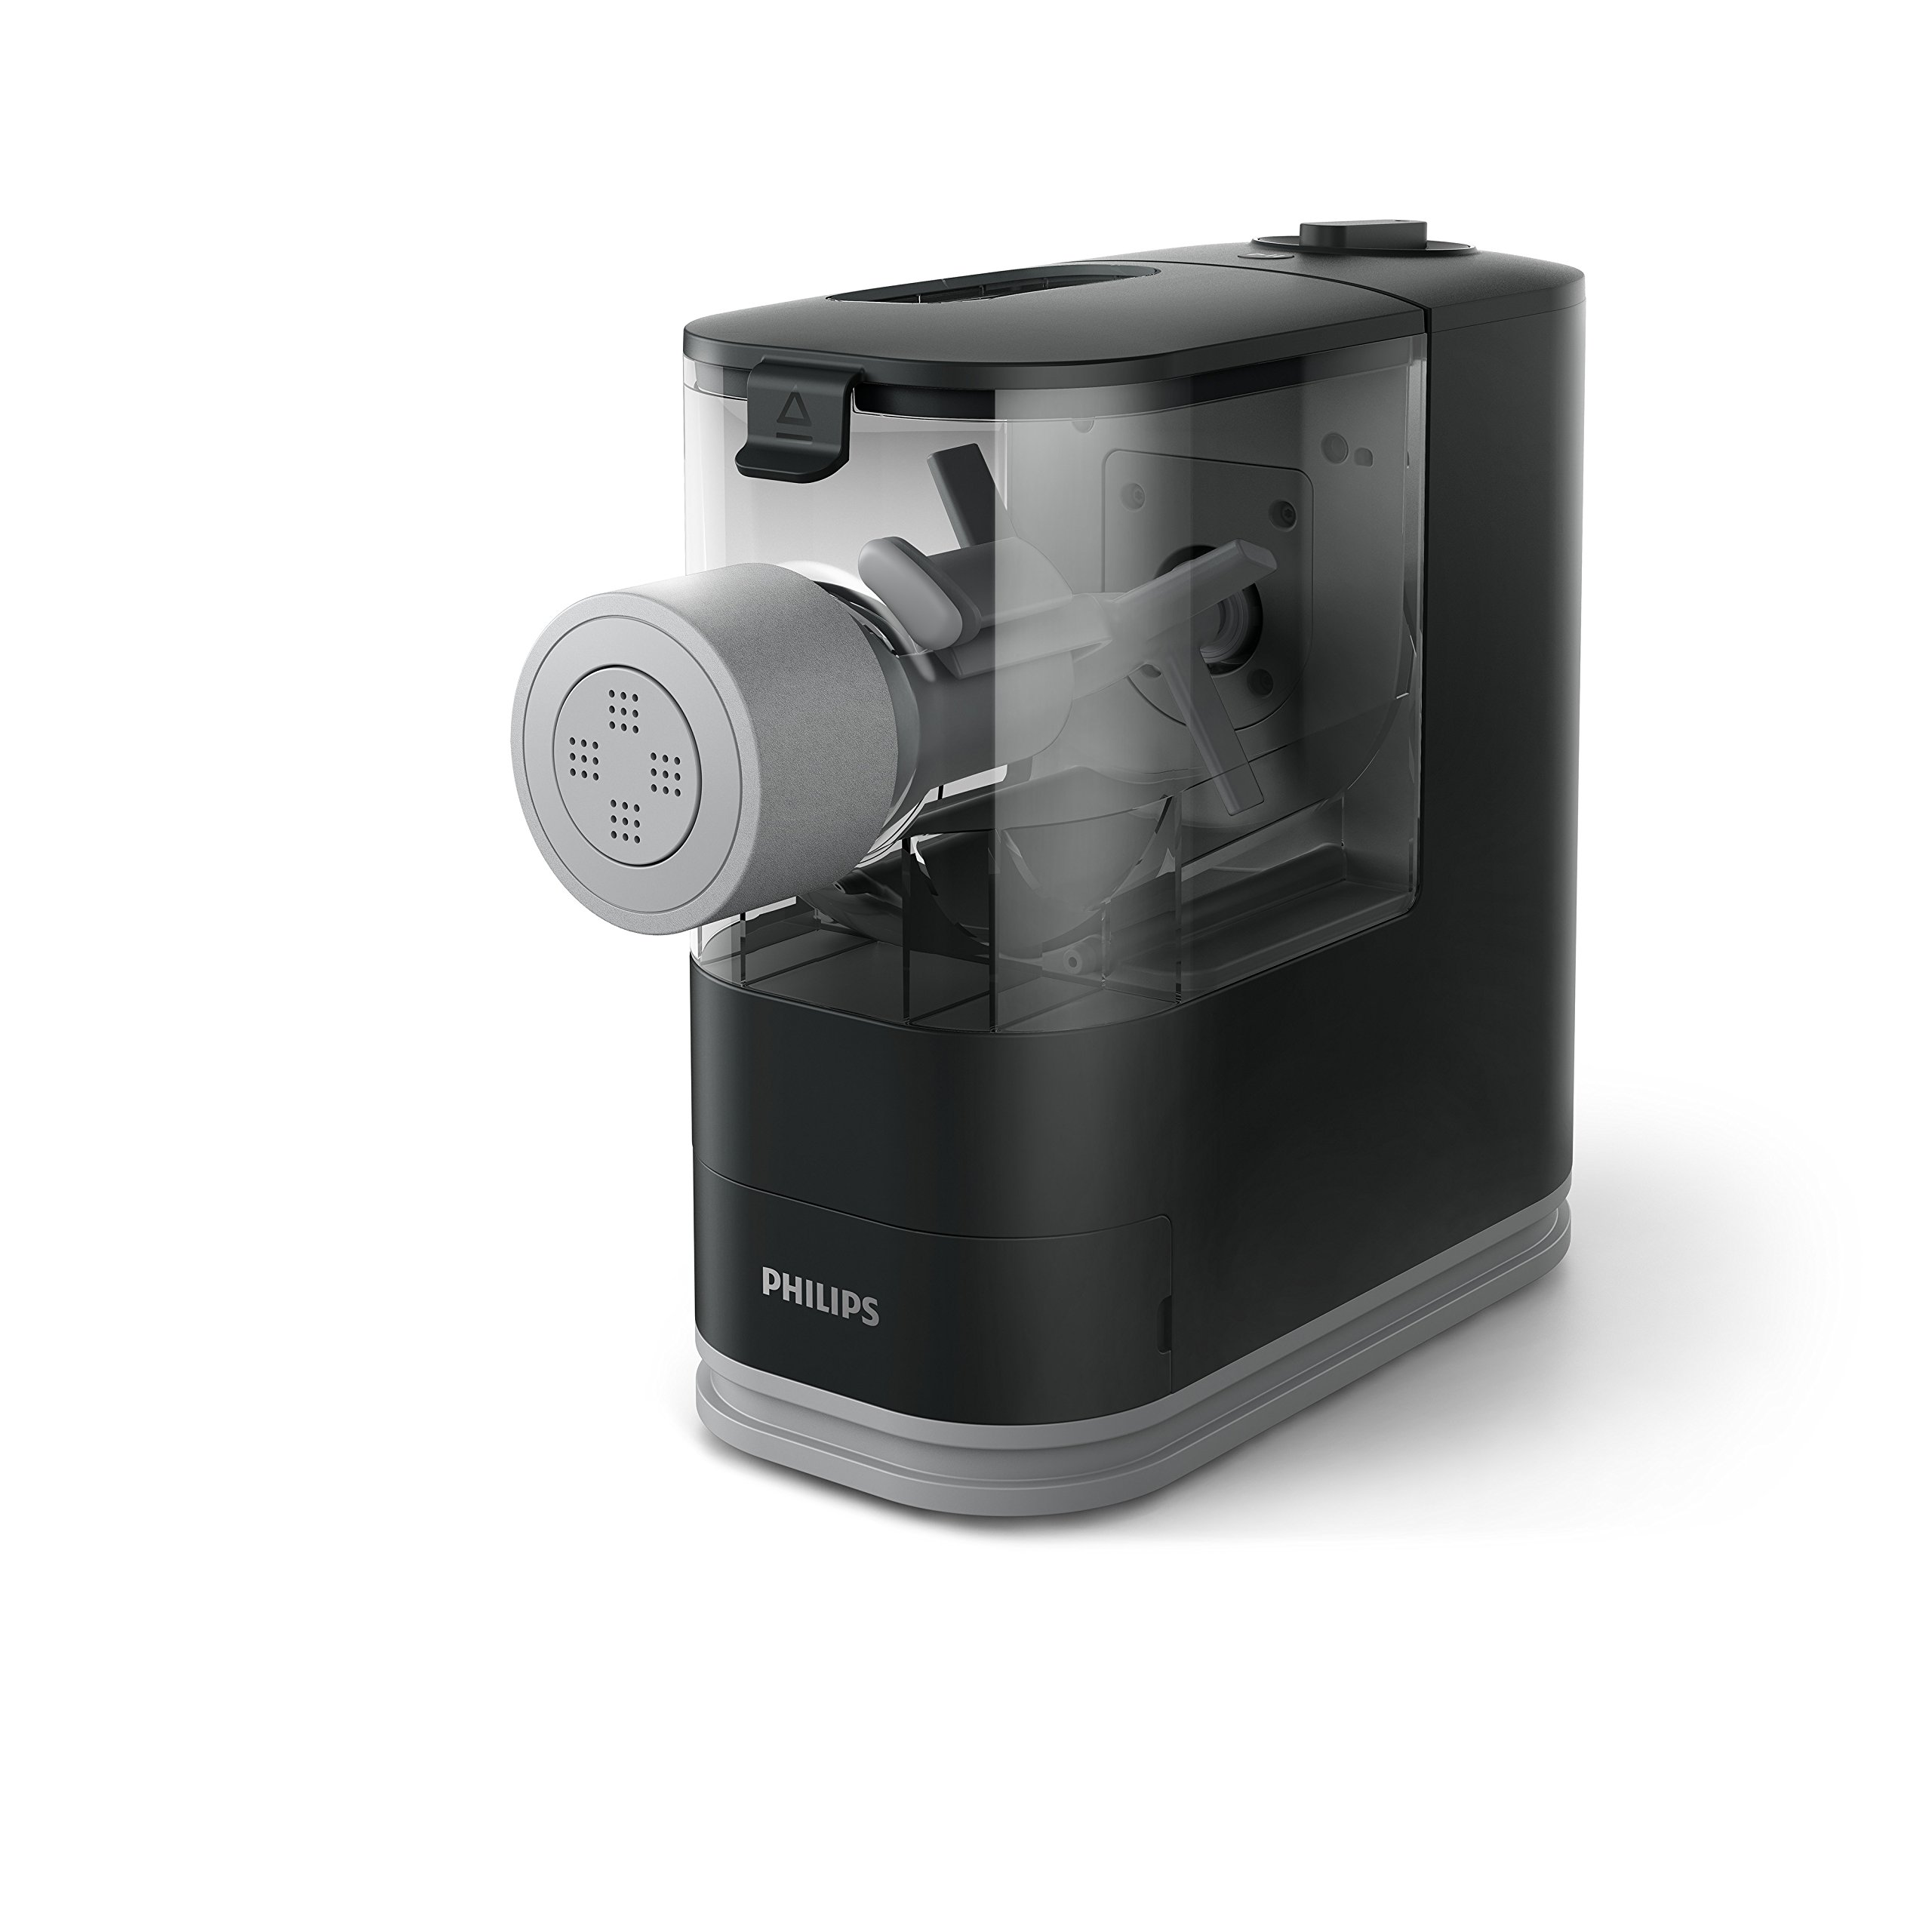 Philips Compact Pasta Maker – Viva Collection, HR2371/05, Black